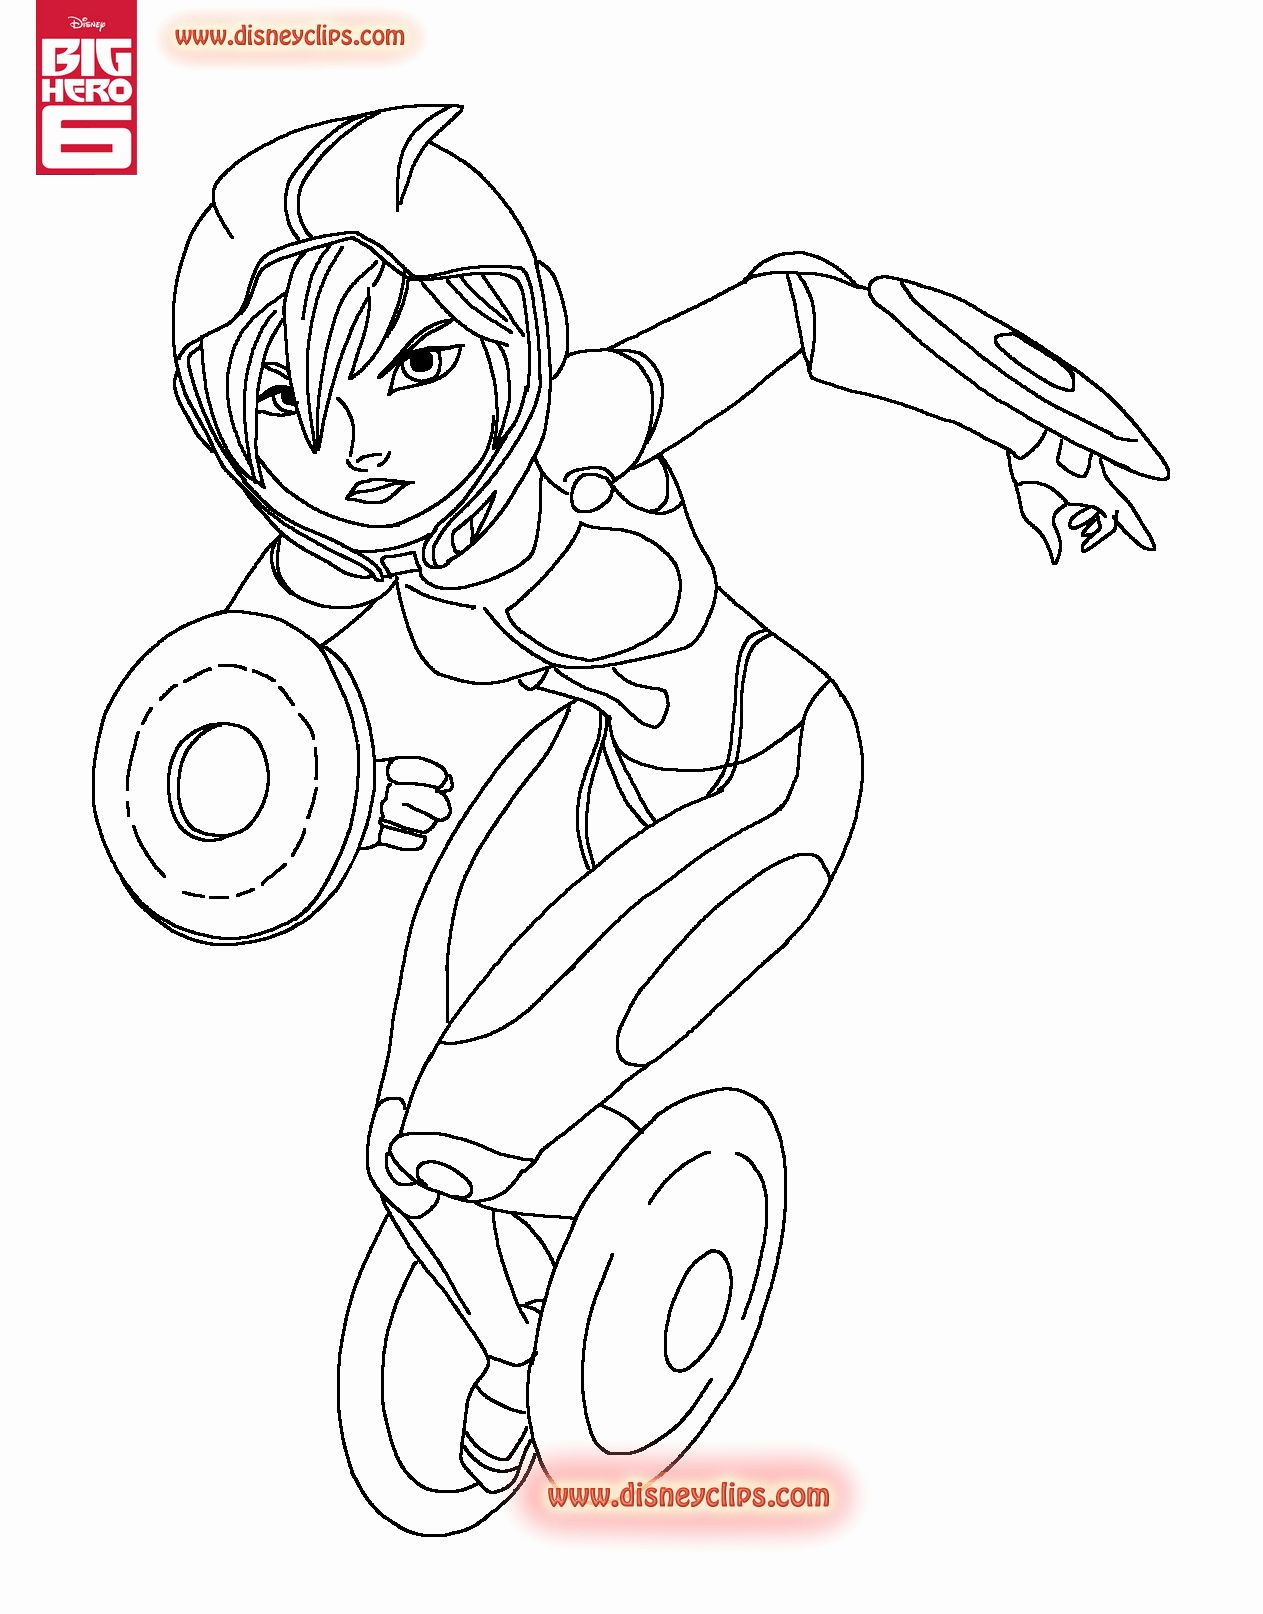 Big Coloring Books Awesome Big Hero 6 Printable Coloring Pages Coloring Books Coloring Pages Cartoon Coloring Pages